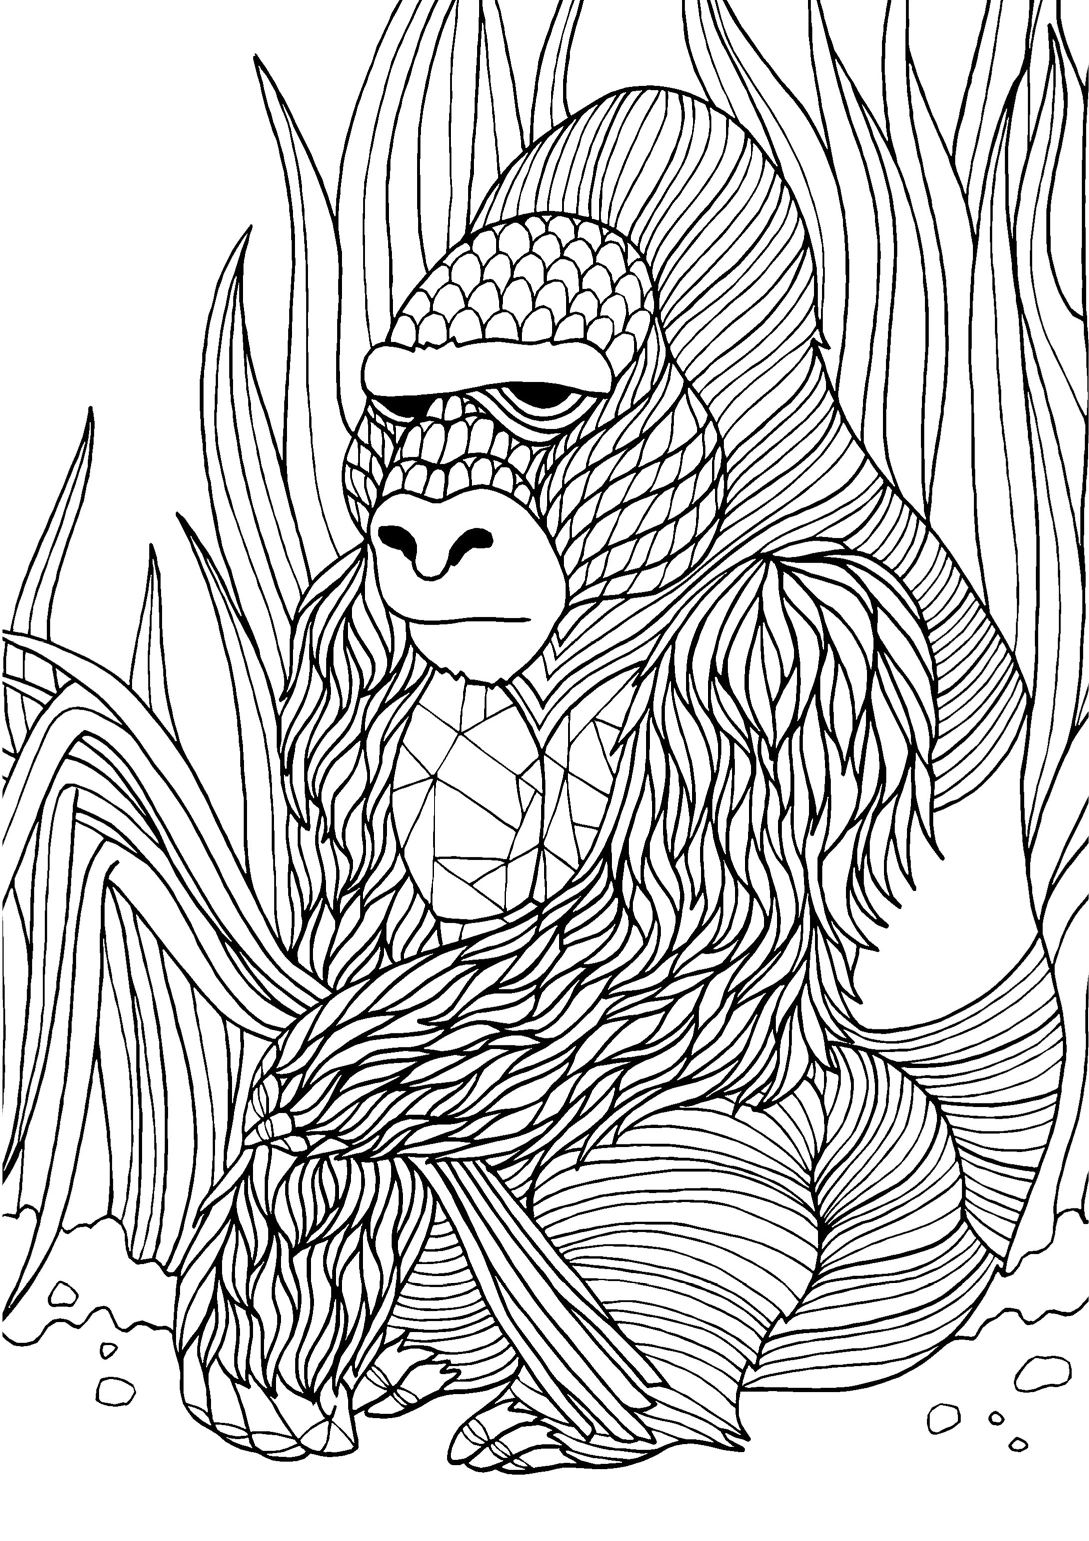 Coloring sheet gorilla - Gorilla Adult Colouring Page Colouring In Sheets Art Craft Art Supplies I